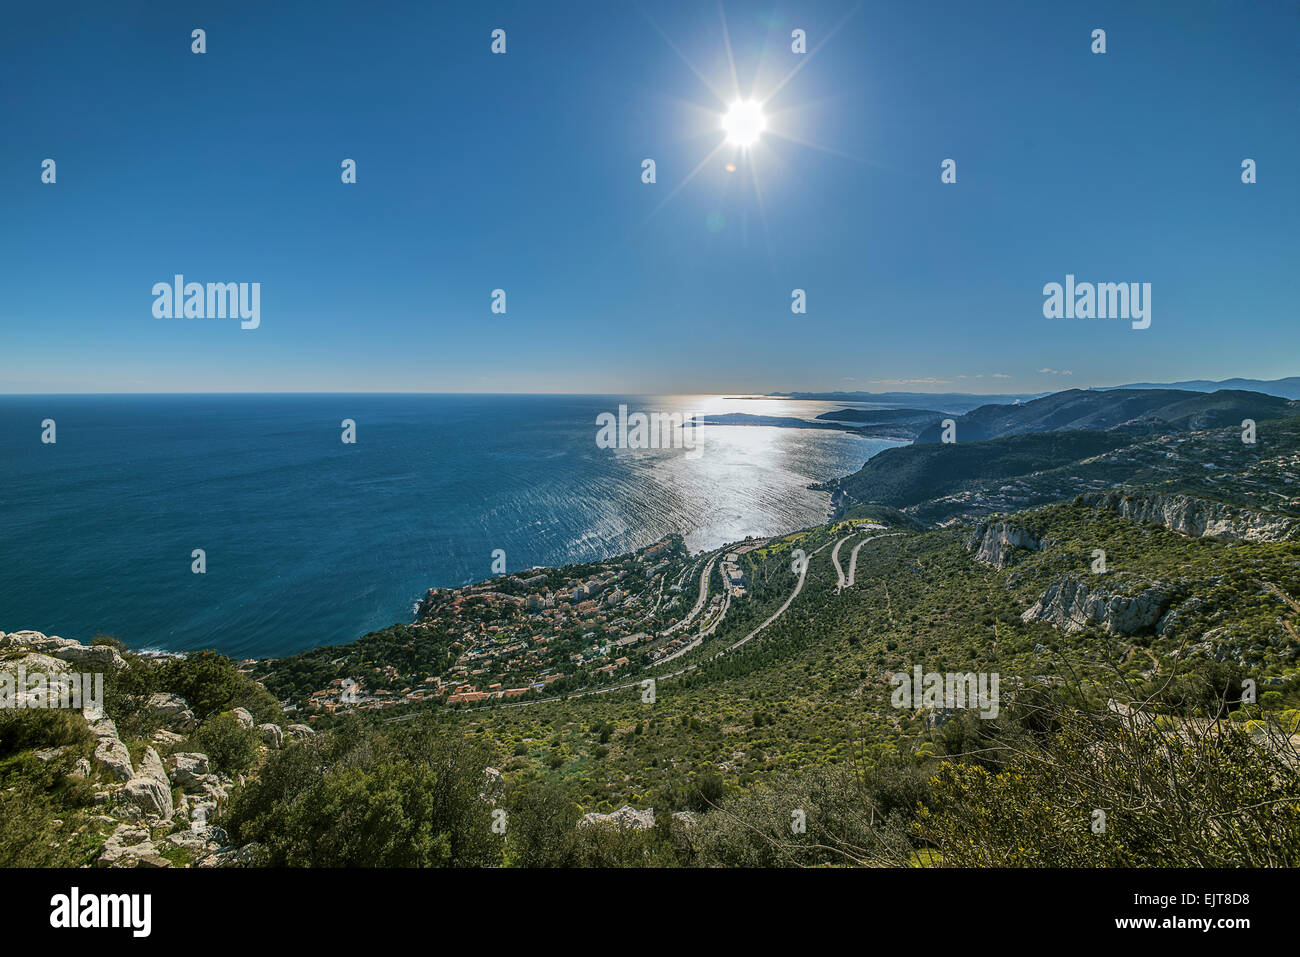 French Riviera coastline - Stock Image